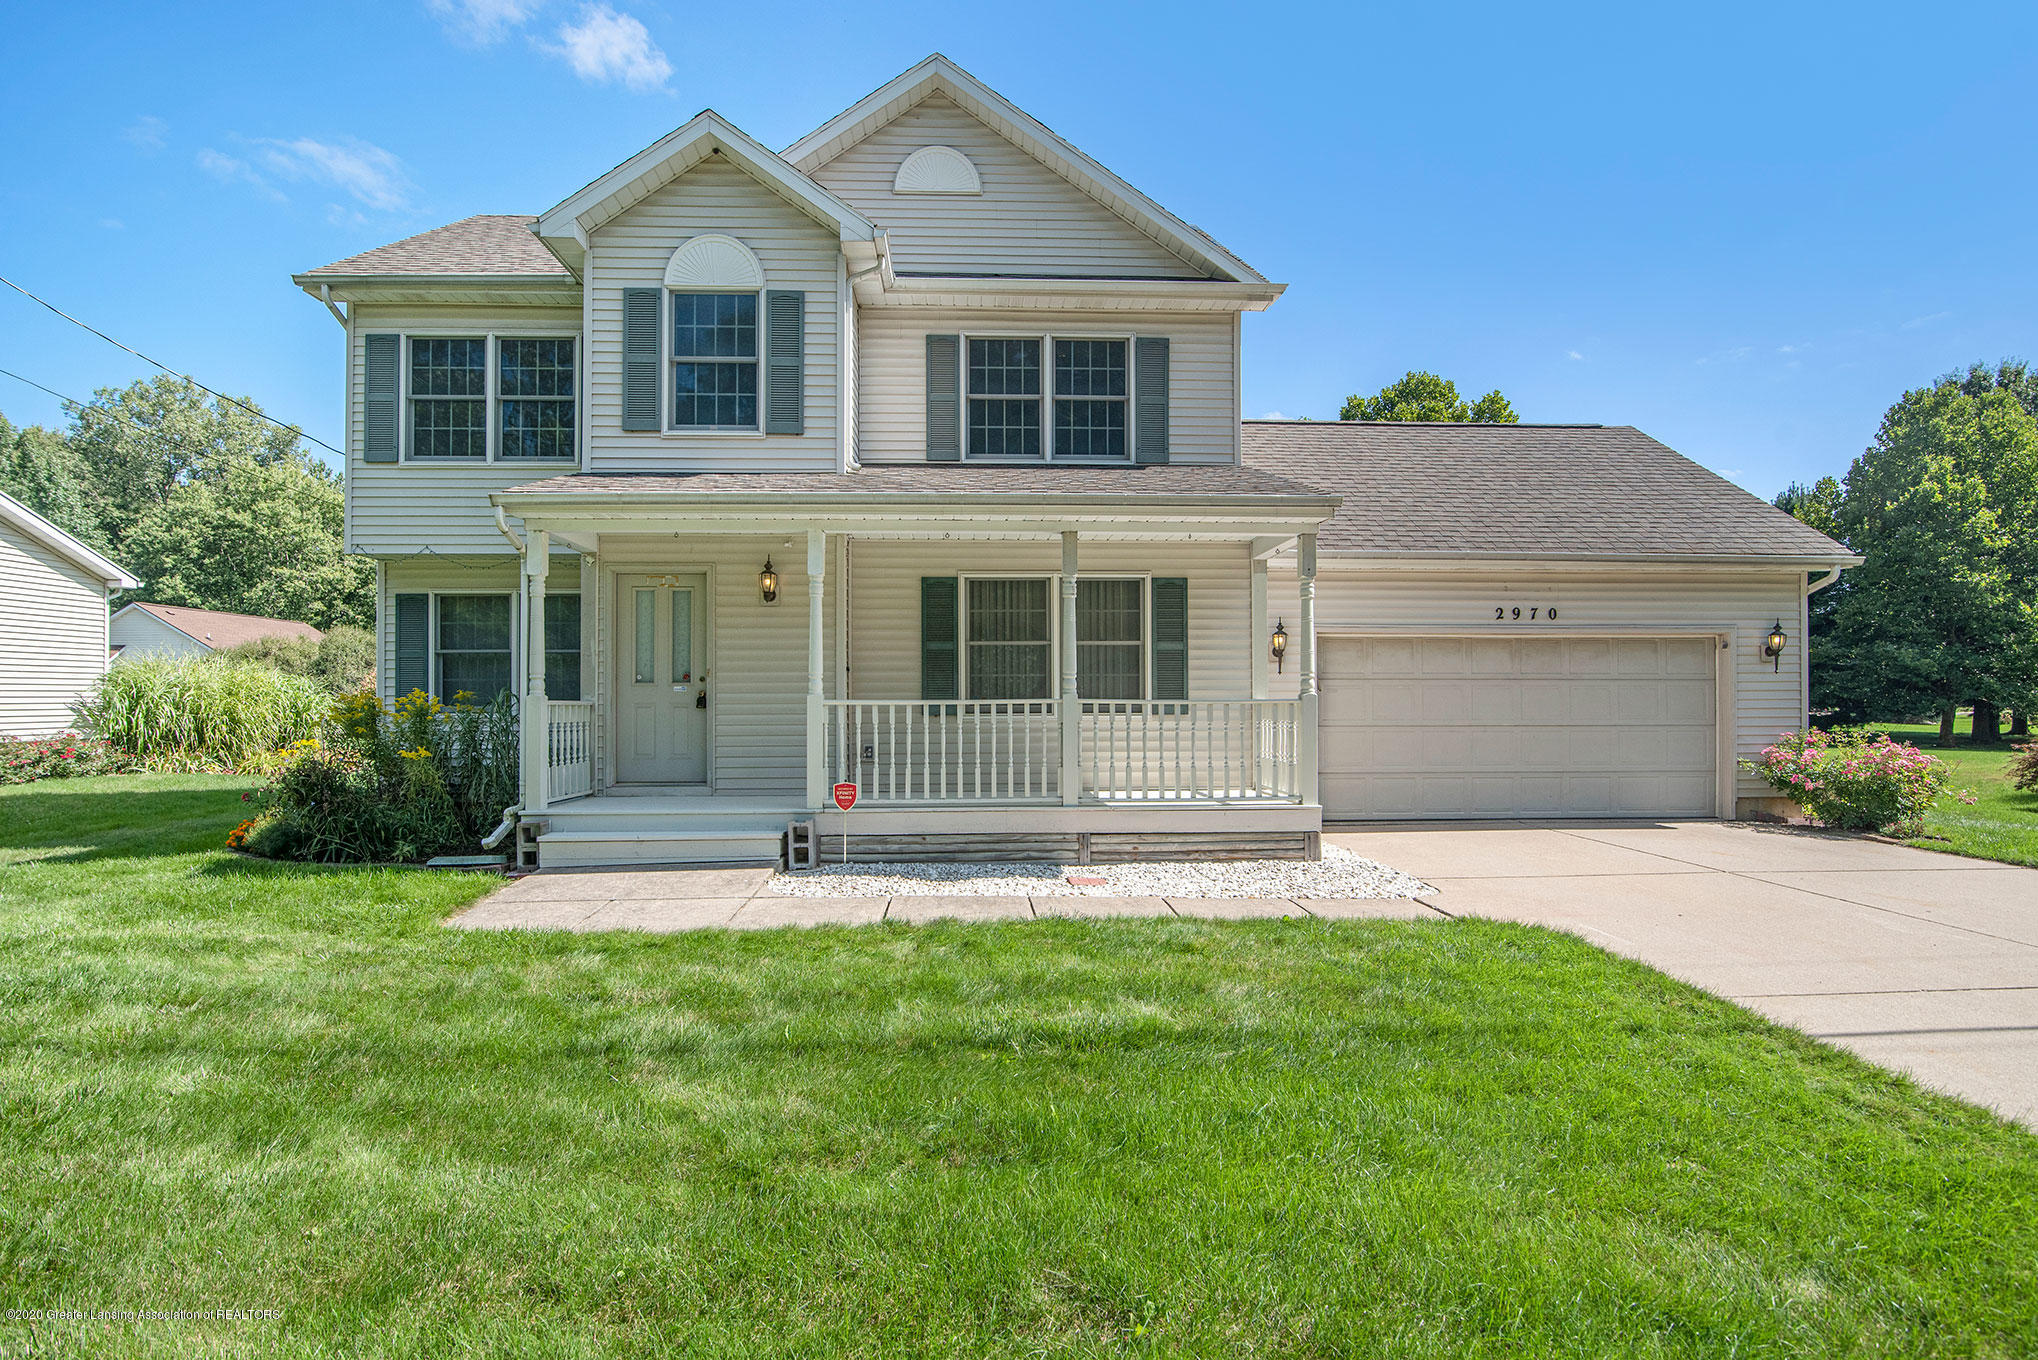 2970 Pinetree Rd - front - 1